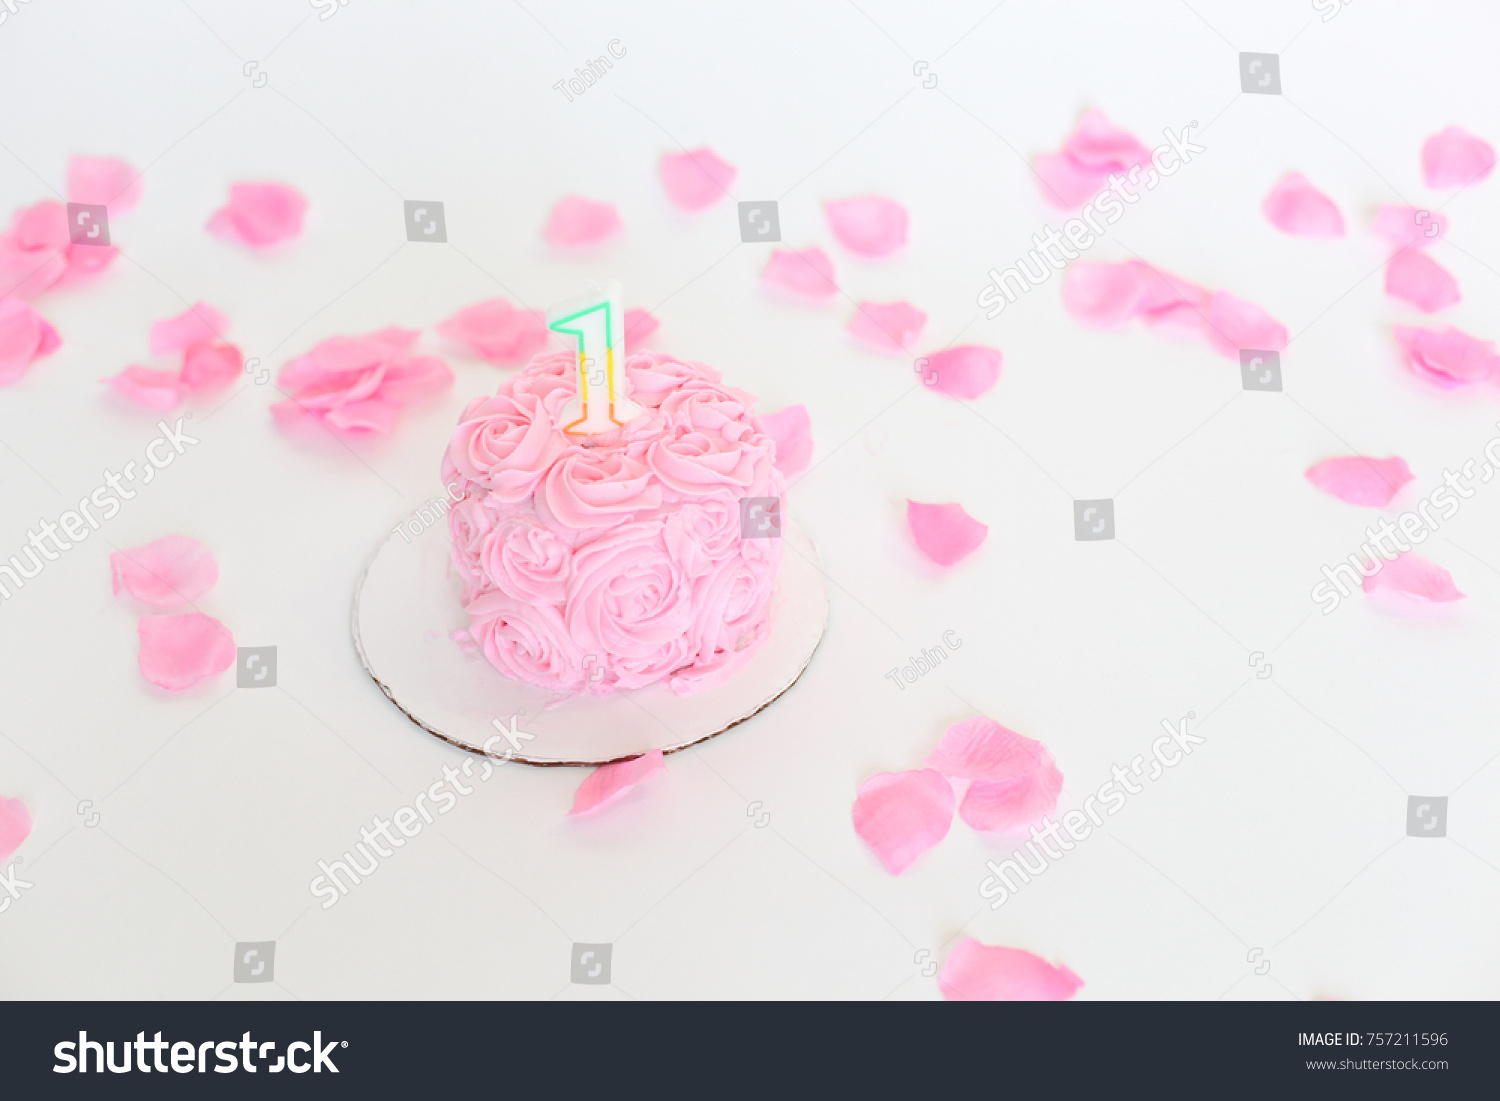 Birthday Cake For One ~ Make a wish and blow out the candles with these birthday party